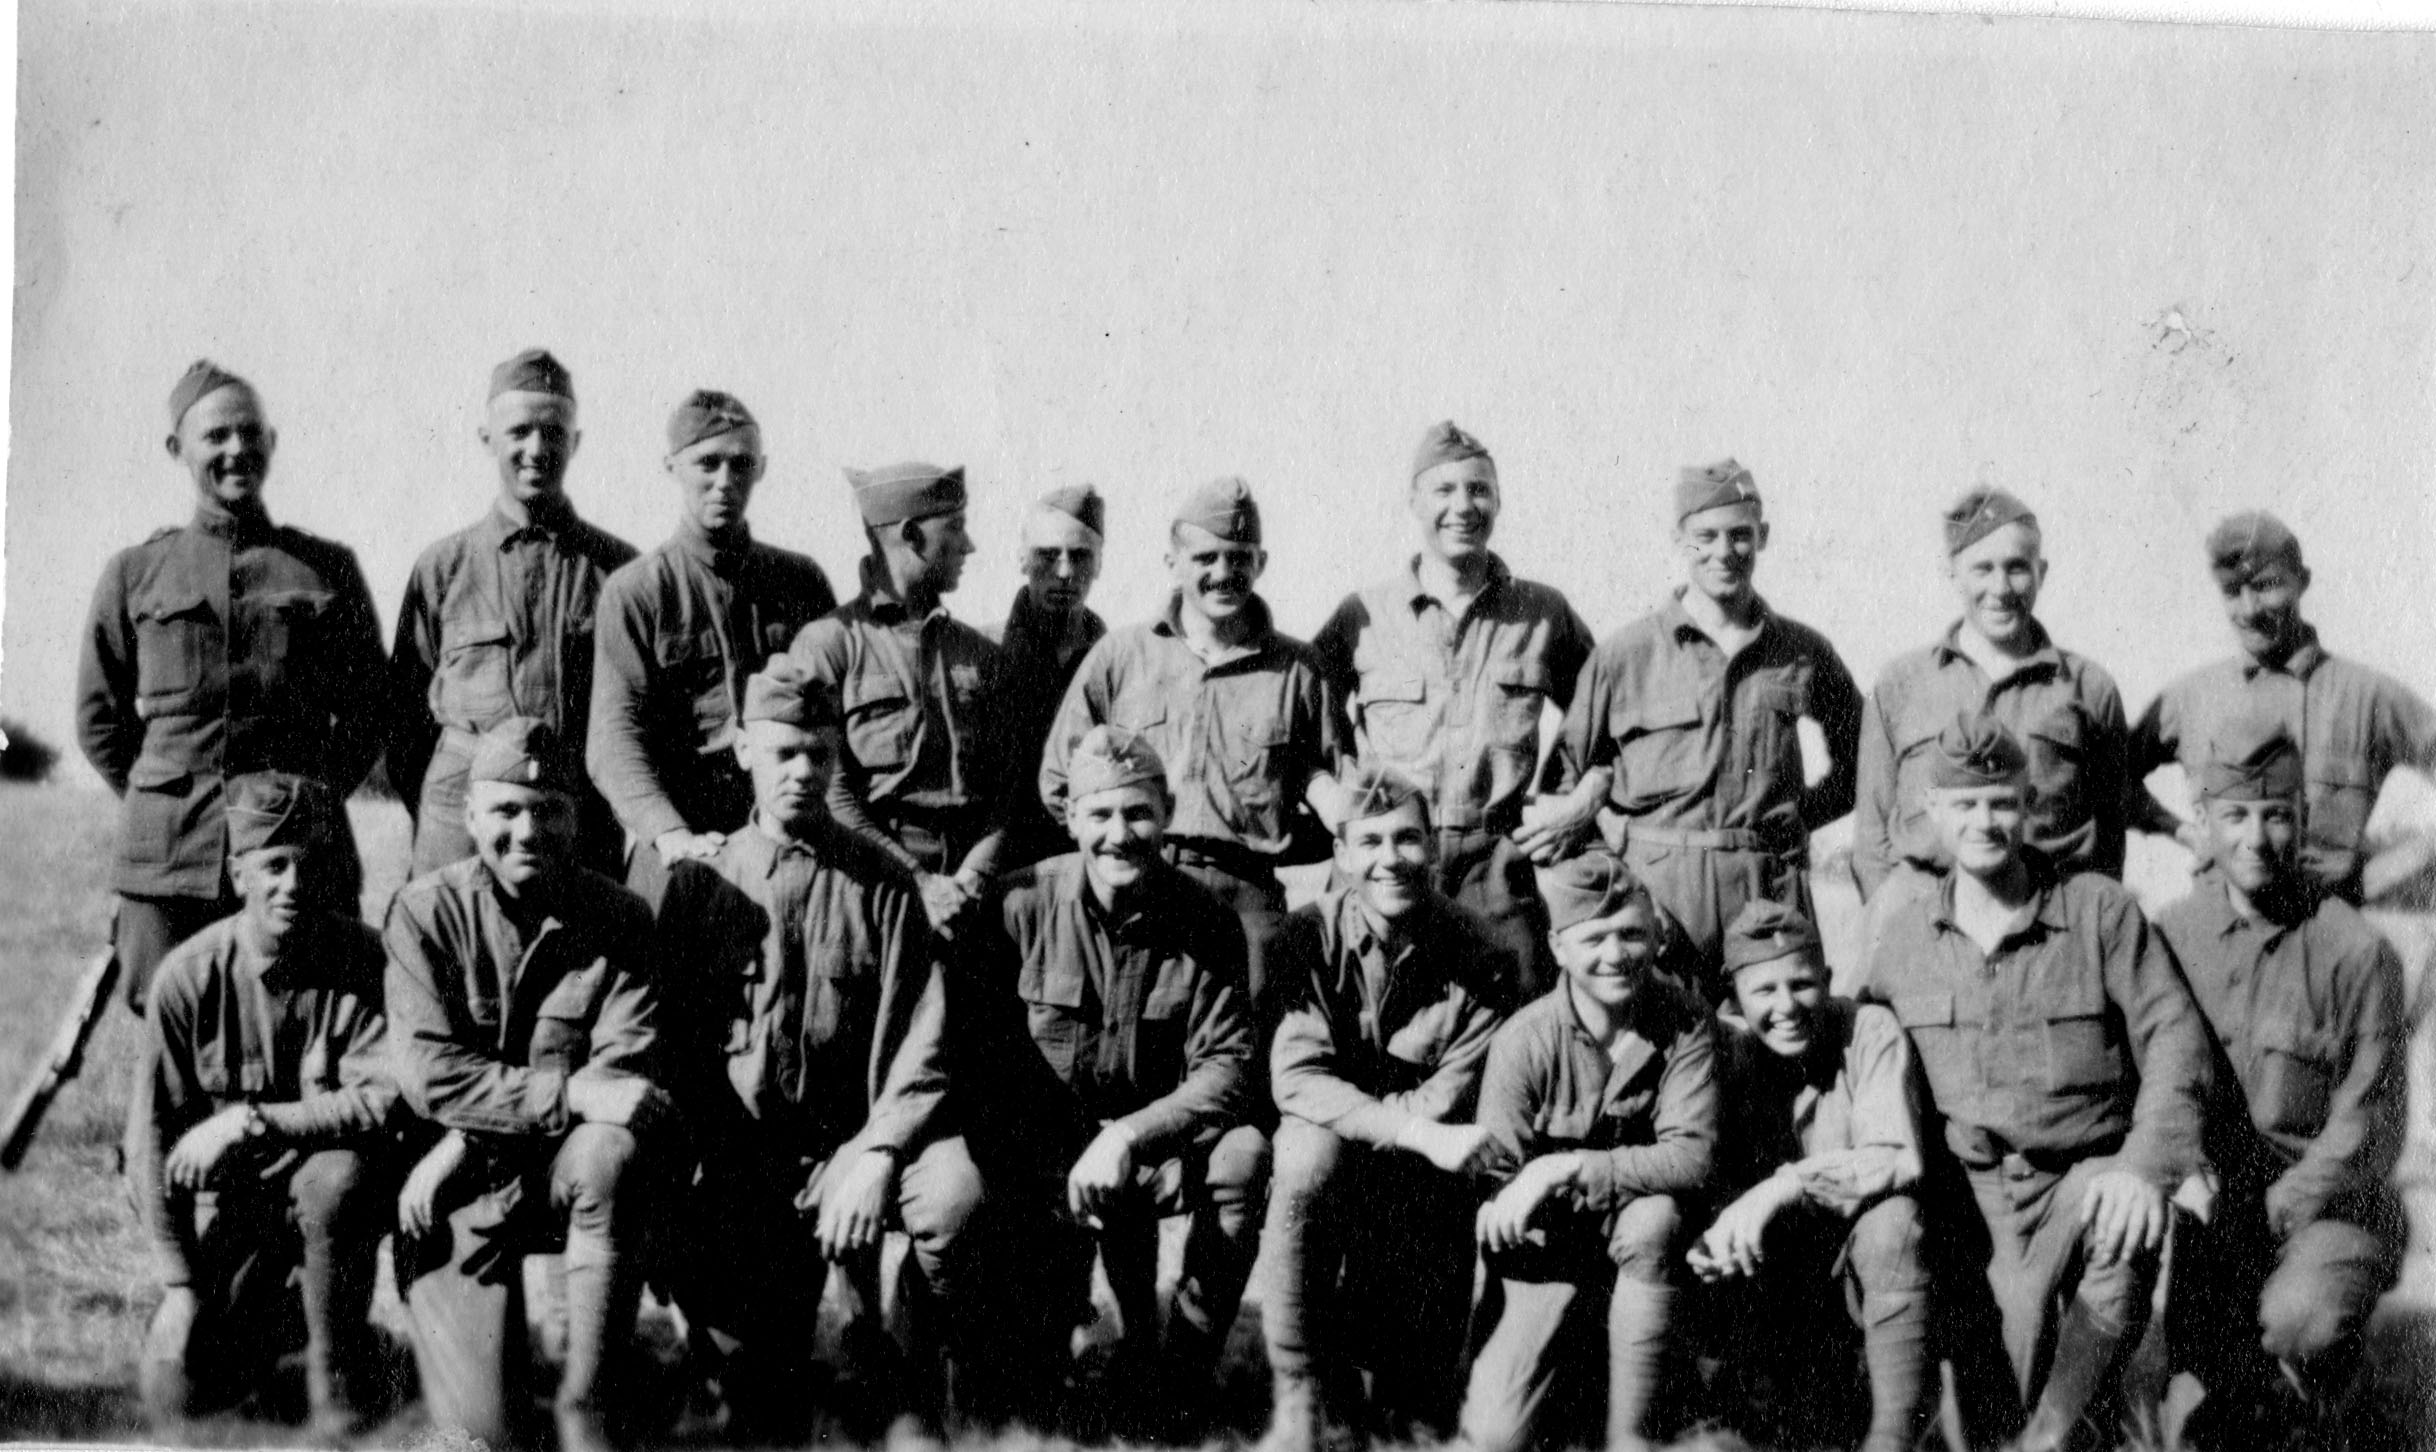 Group Photograph of Soldiers, circa 1918